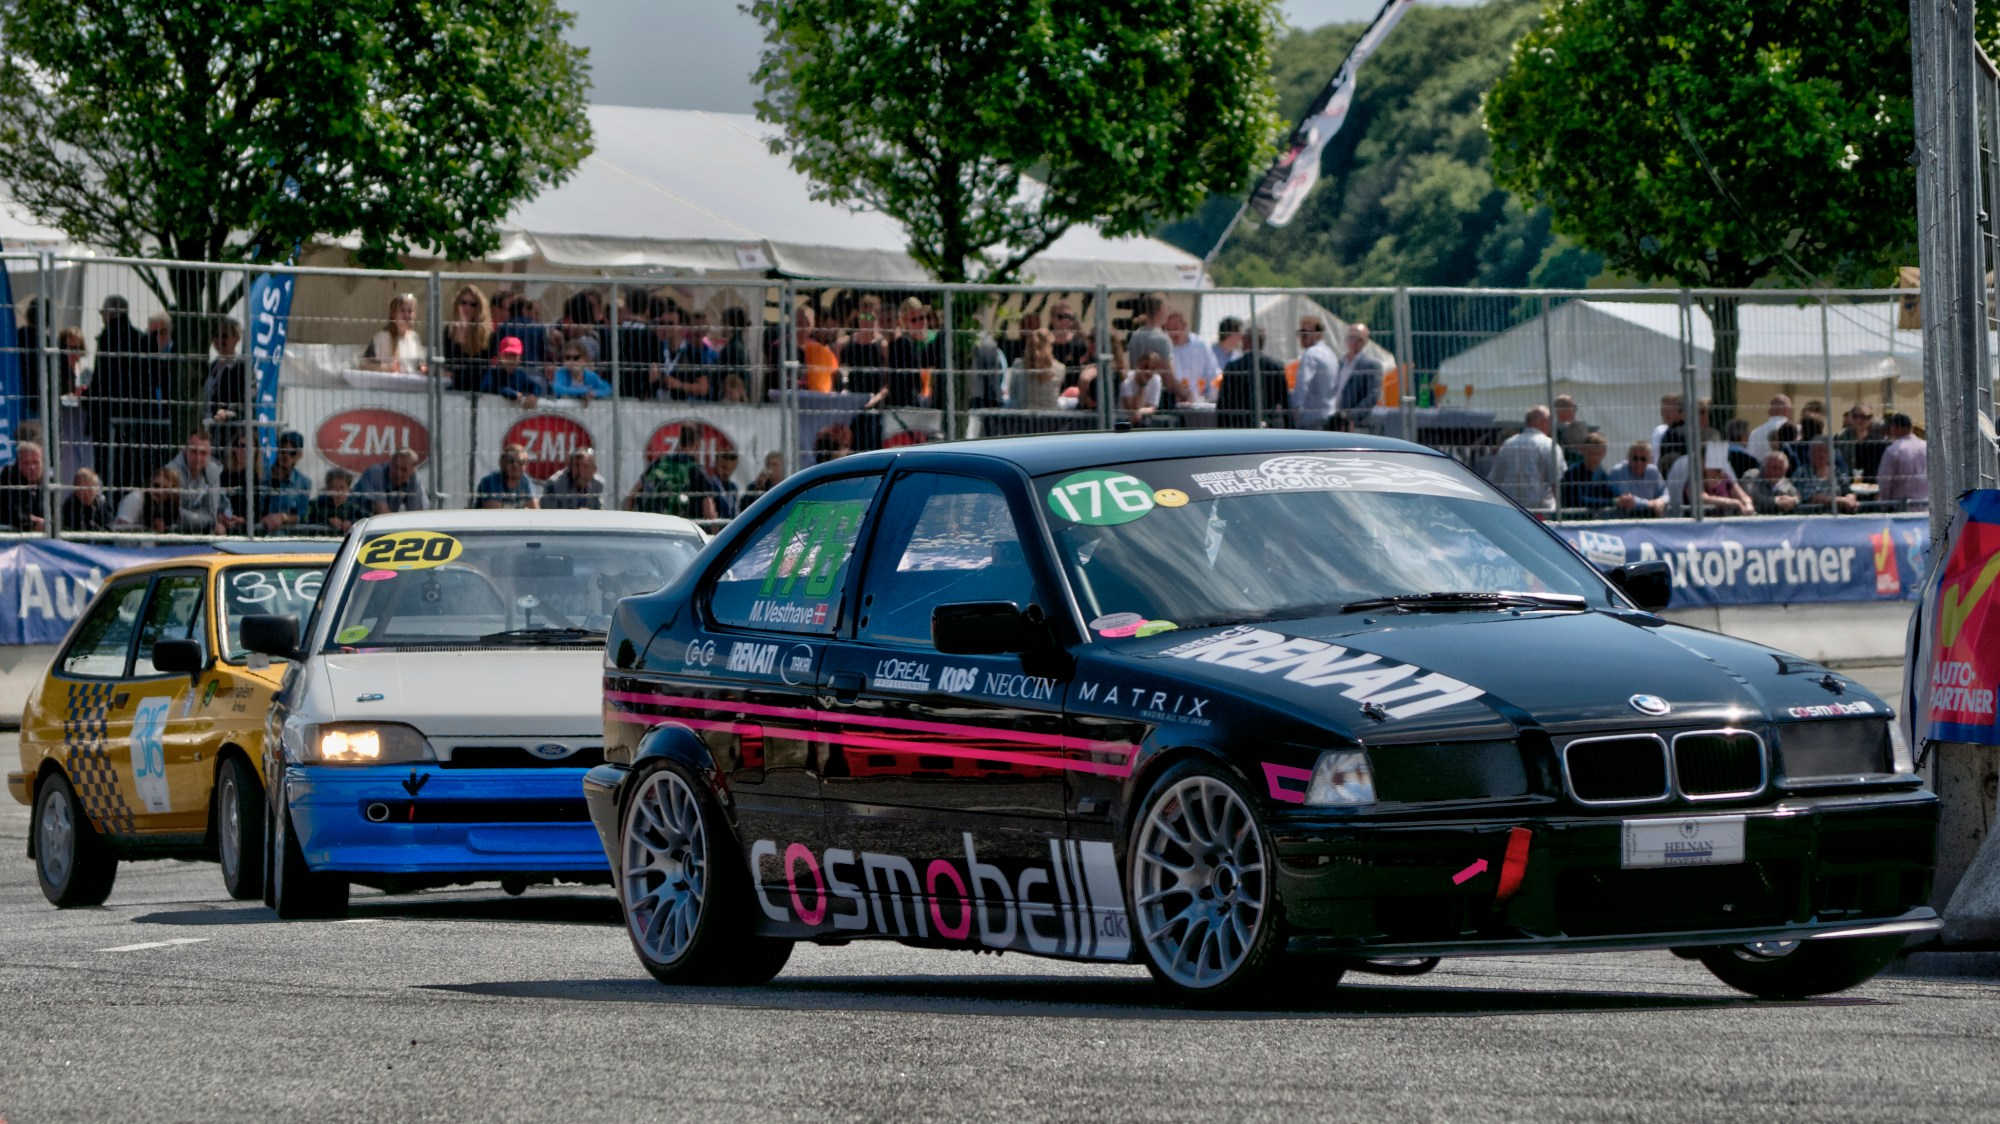 hight resolution of file l13 21 18 youngtimer 176 bmw 318ti compact 1995